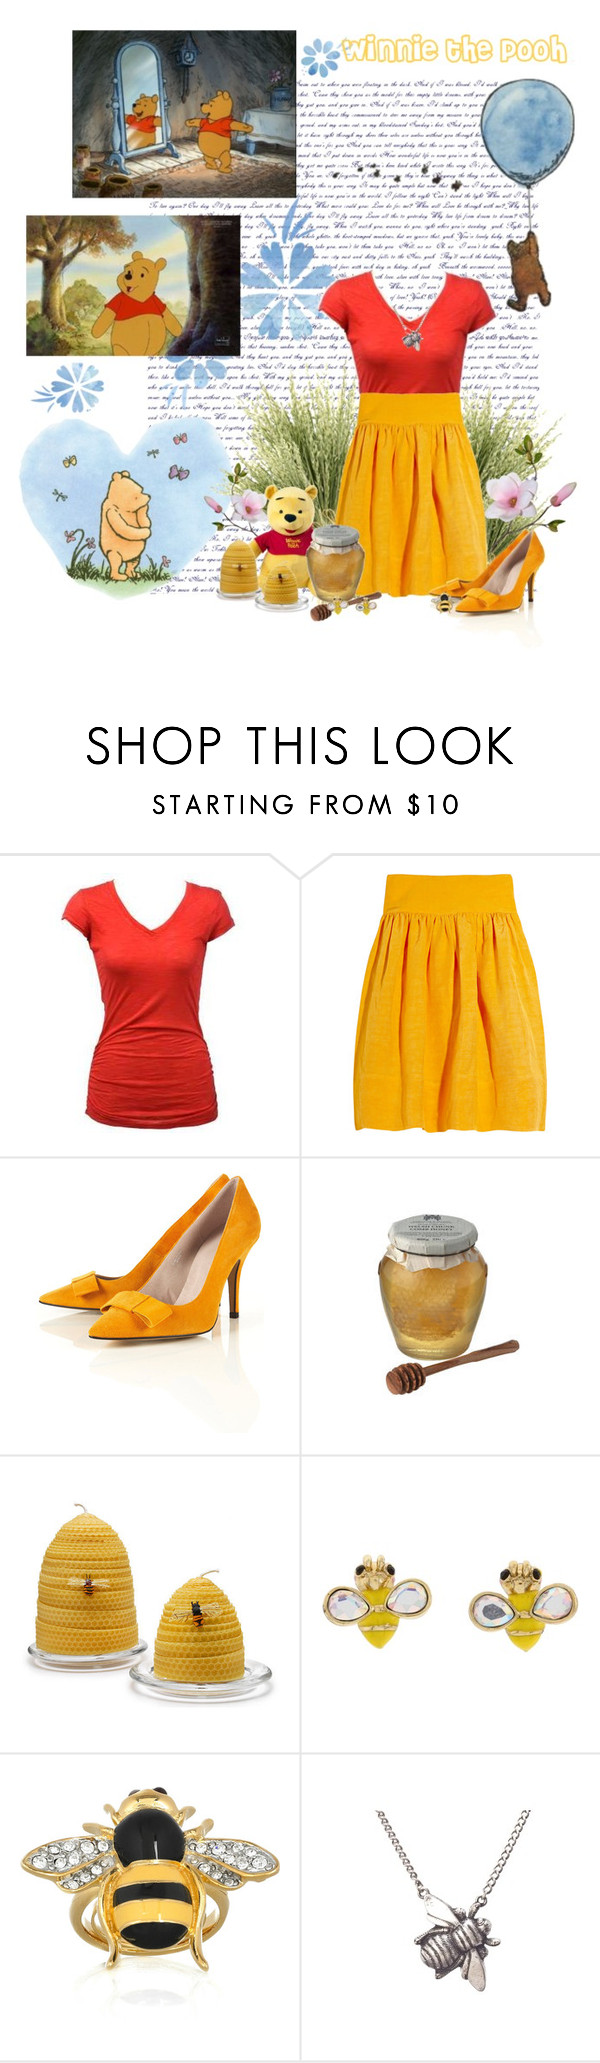 """""""Winnie the Pooh"""" by maddie-madhatt3r ❤ liked on Polyvore featuring Edition, Moschino, Burberry, Chunk, Betsey Johnson, Kenneth Jay Lane, yellow heels, bee jewelry, disney and red top"""